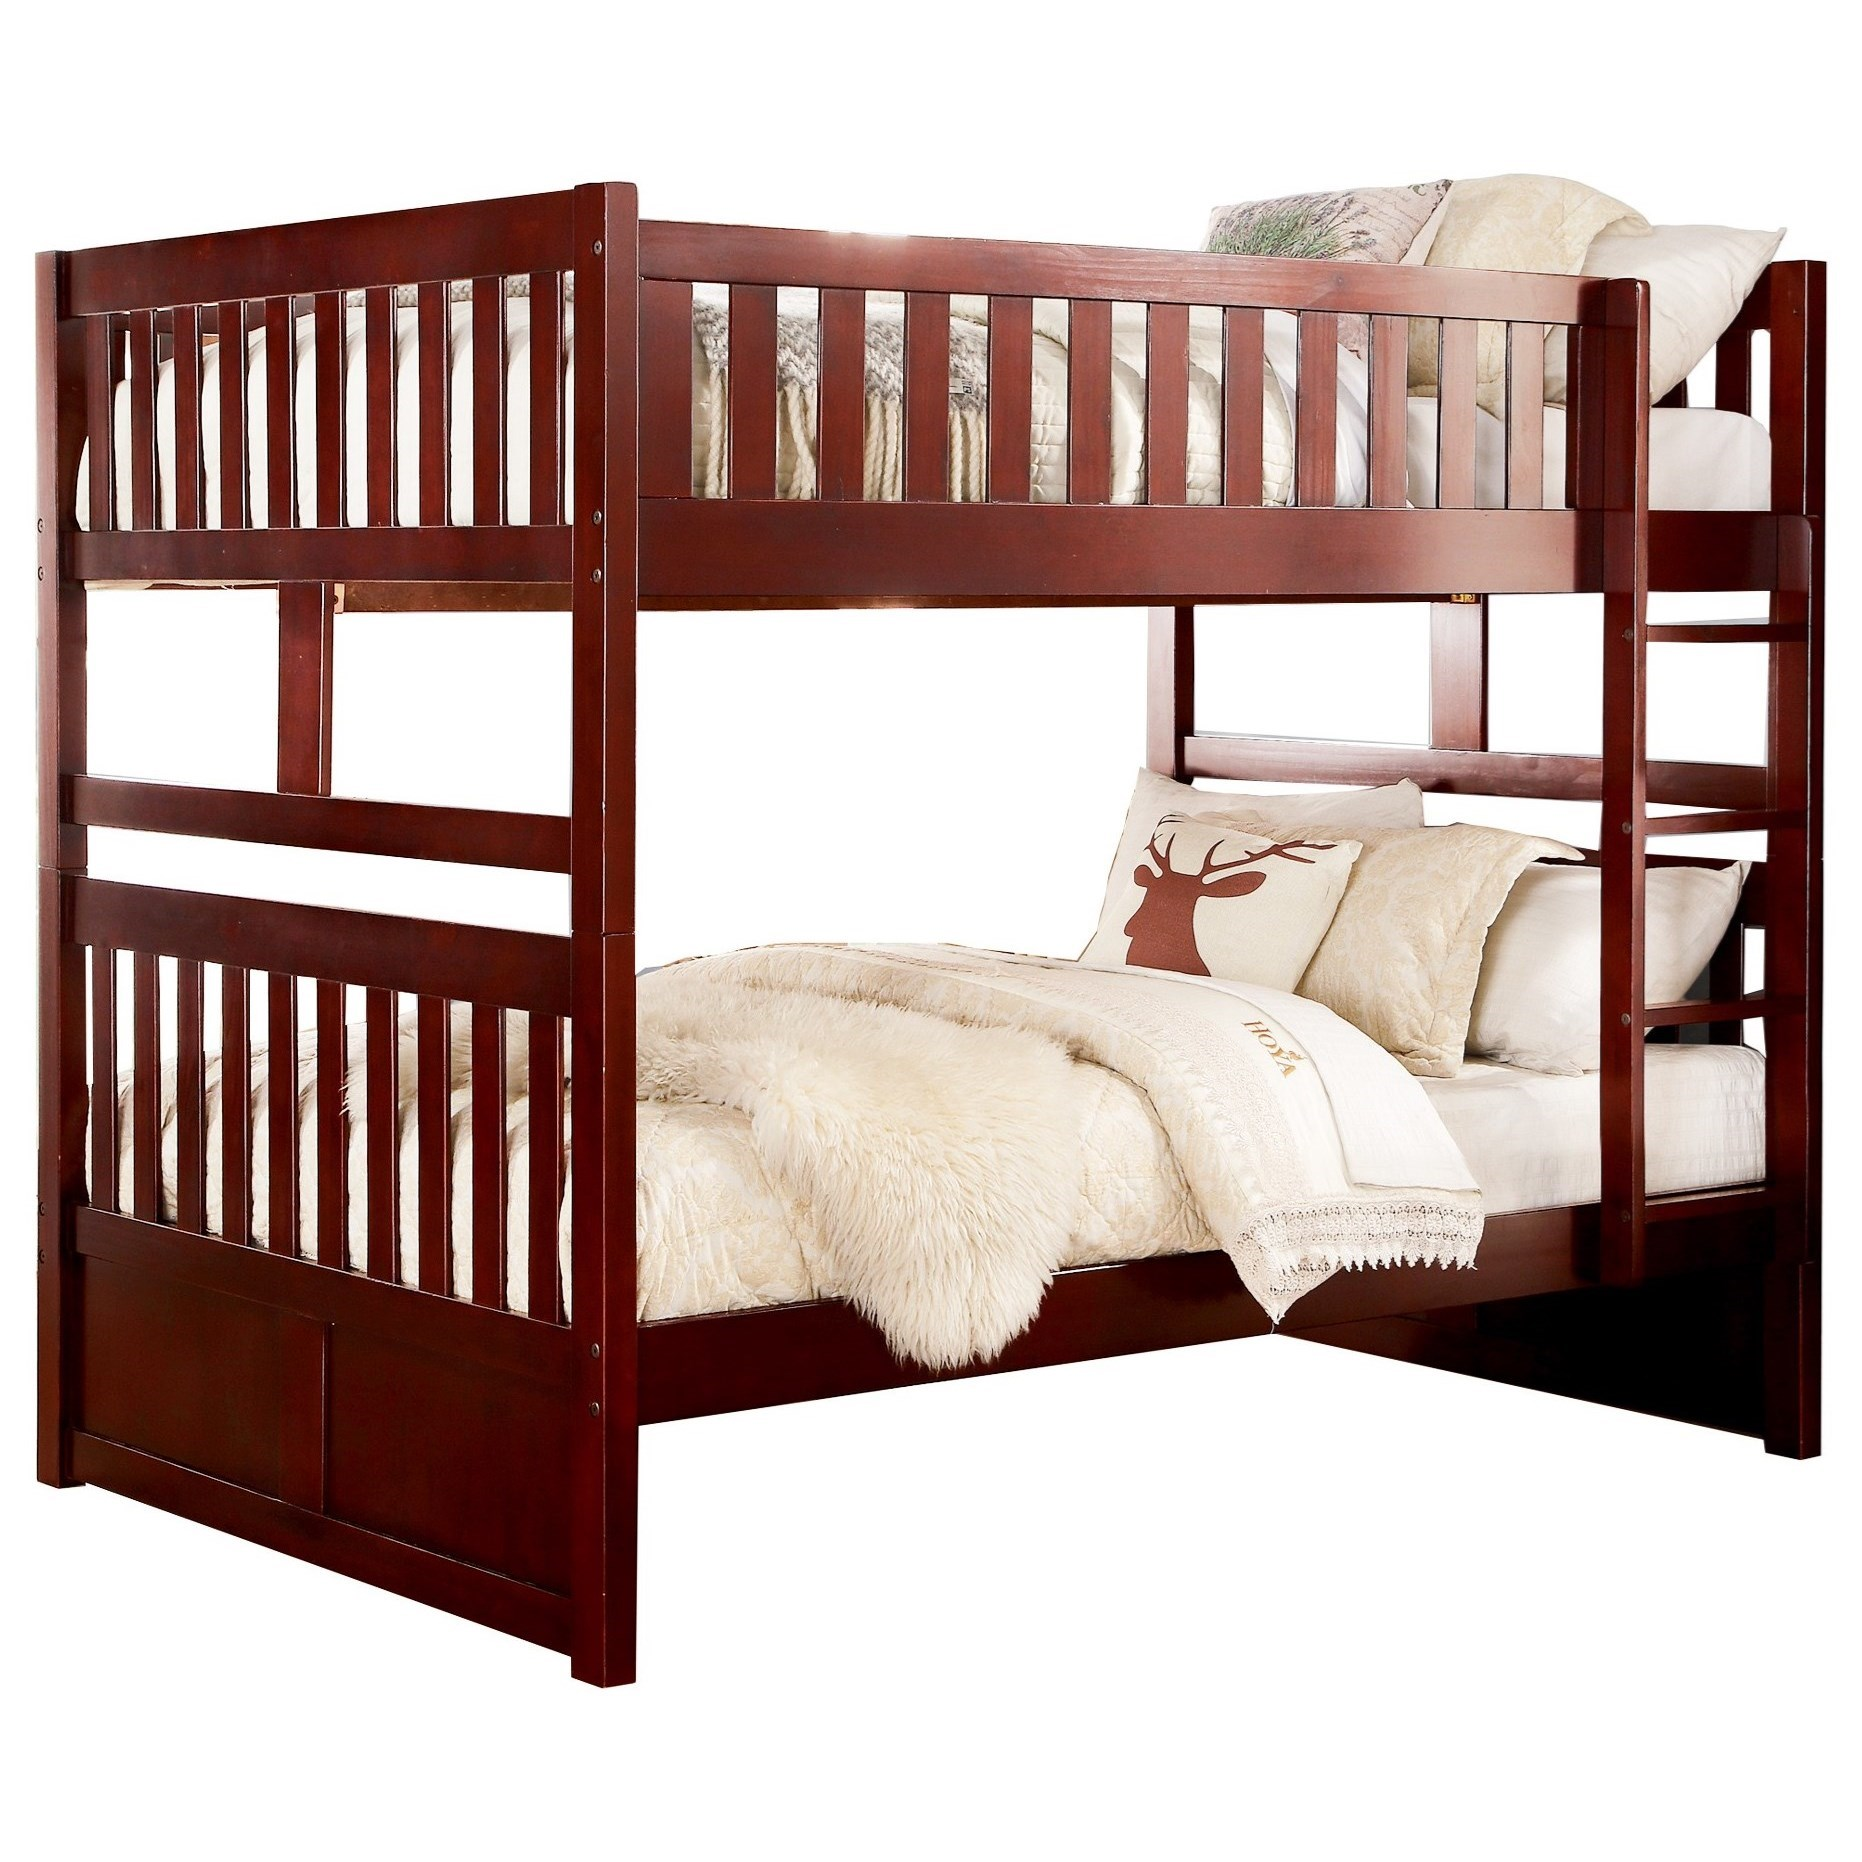 Rowe Full Over Full Bunk Bed by Homelegance at Beck's Furniture